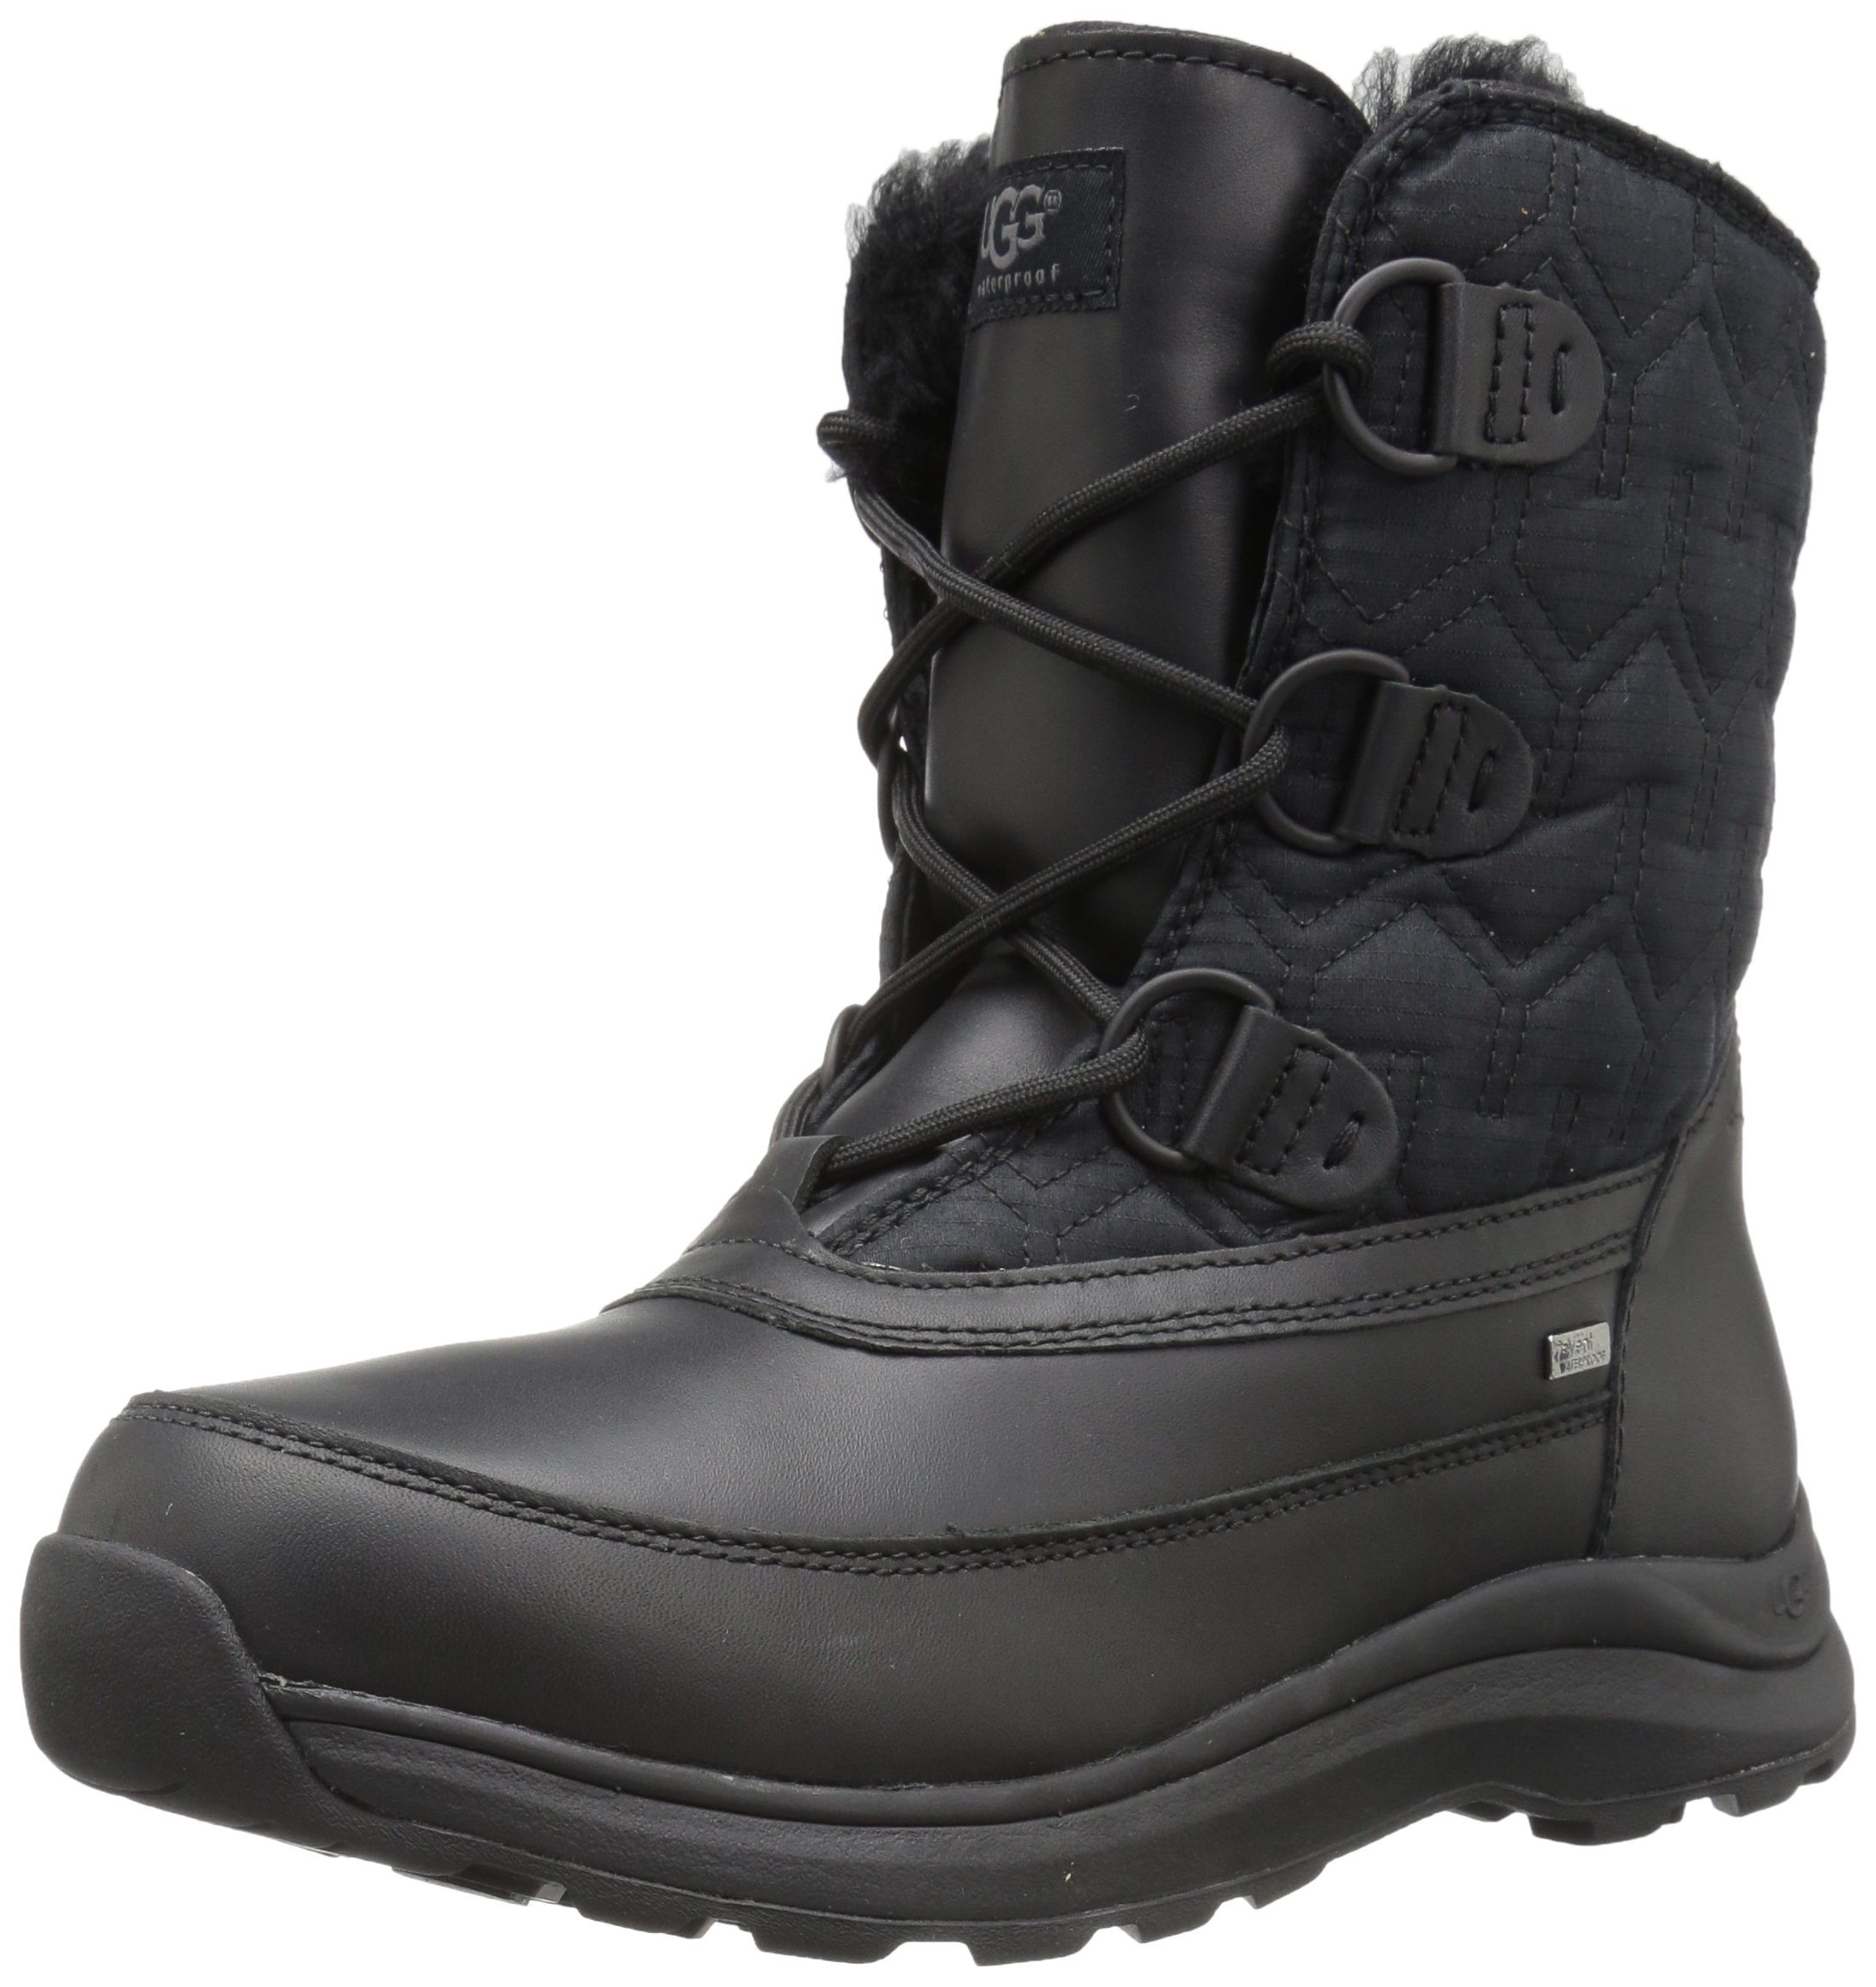 UGG Women's Lachlan Winter Boot, Black, 8 M US by UGG (Image #1)